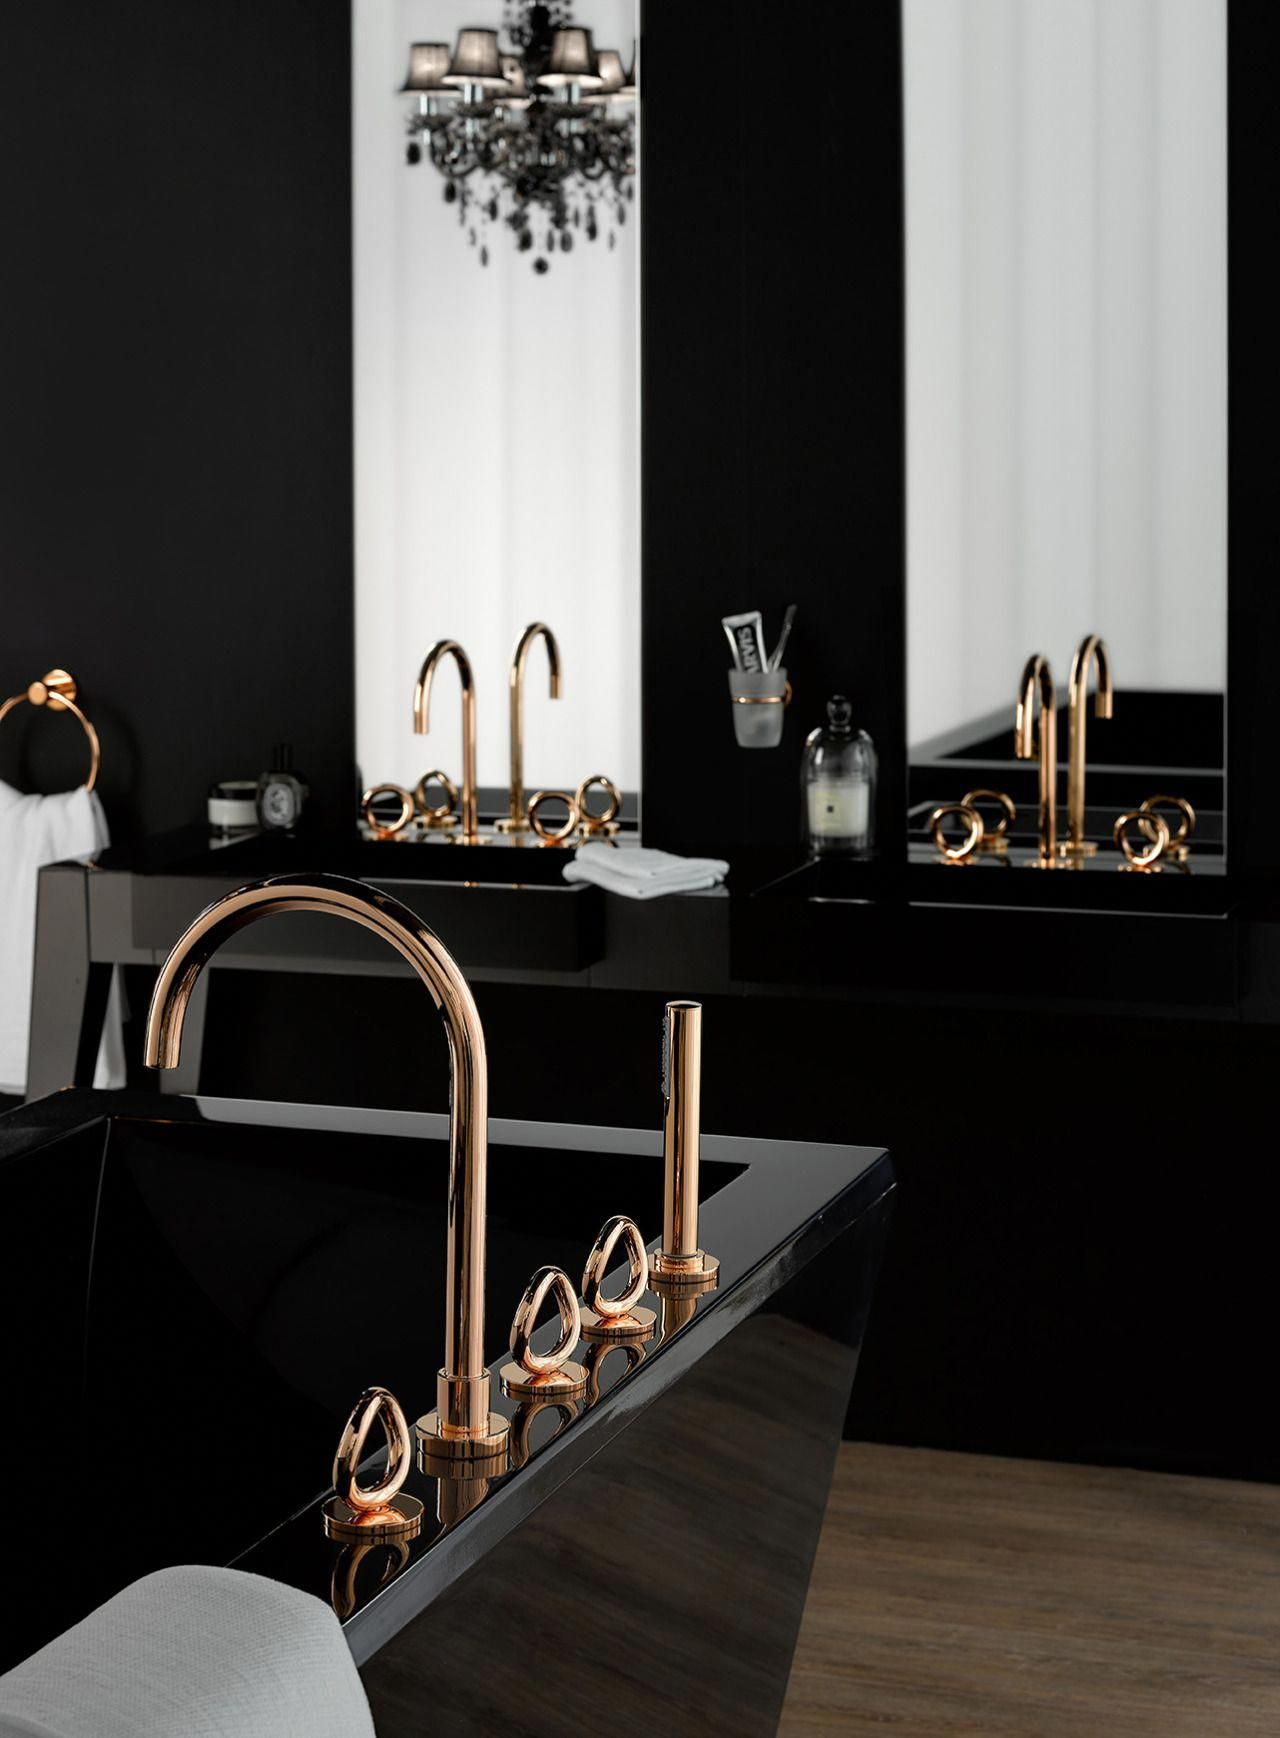 Rose Gold Bathroom Accessories At Homegoods And Marshall S Gold Bathroom Accessories Gold Bathroom Decor Pink Bathroom Accessories